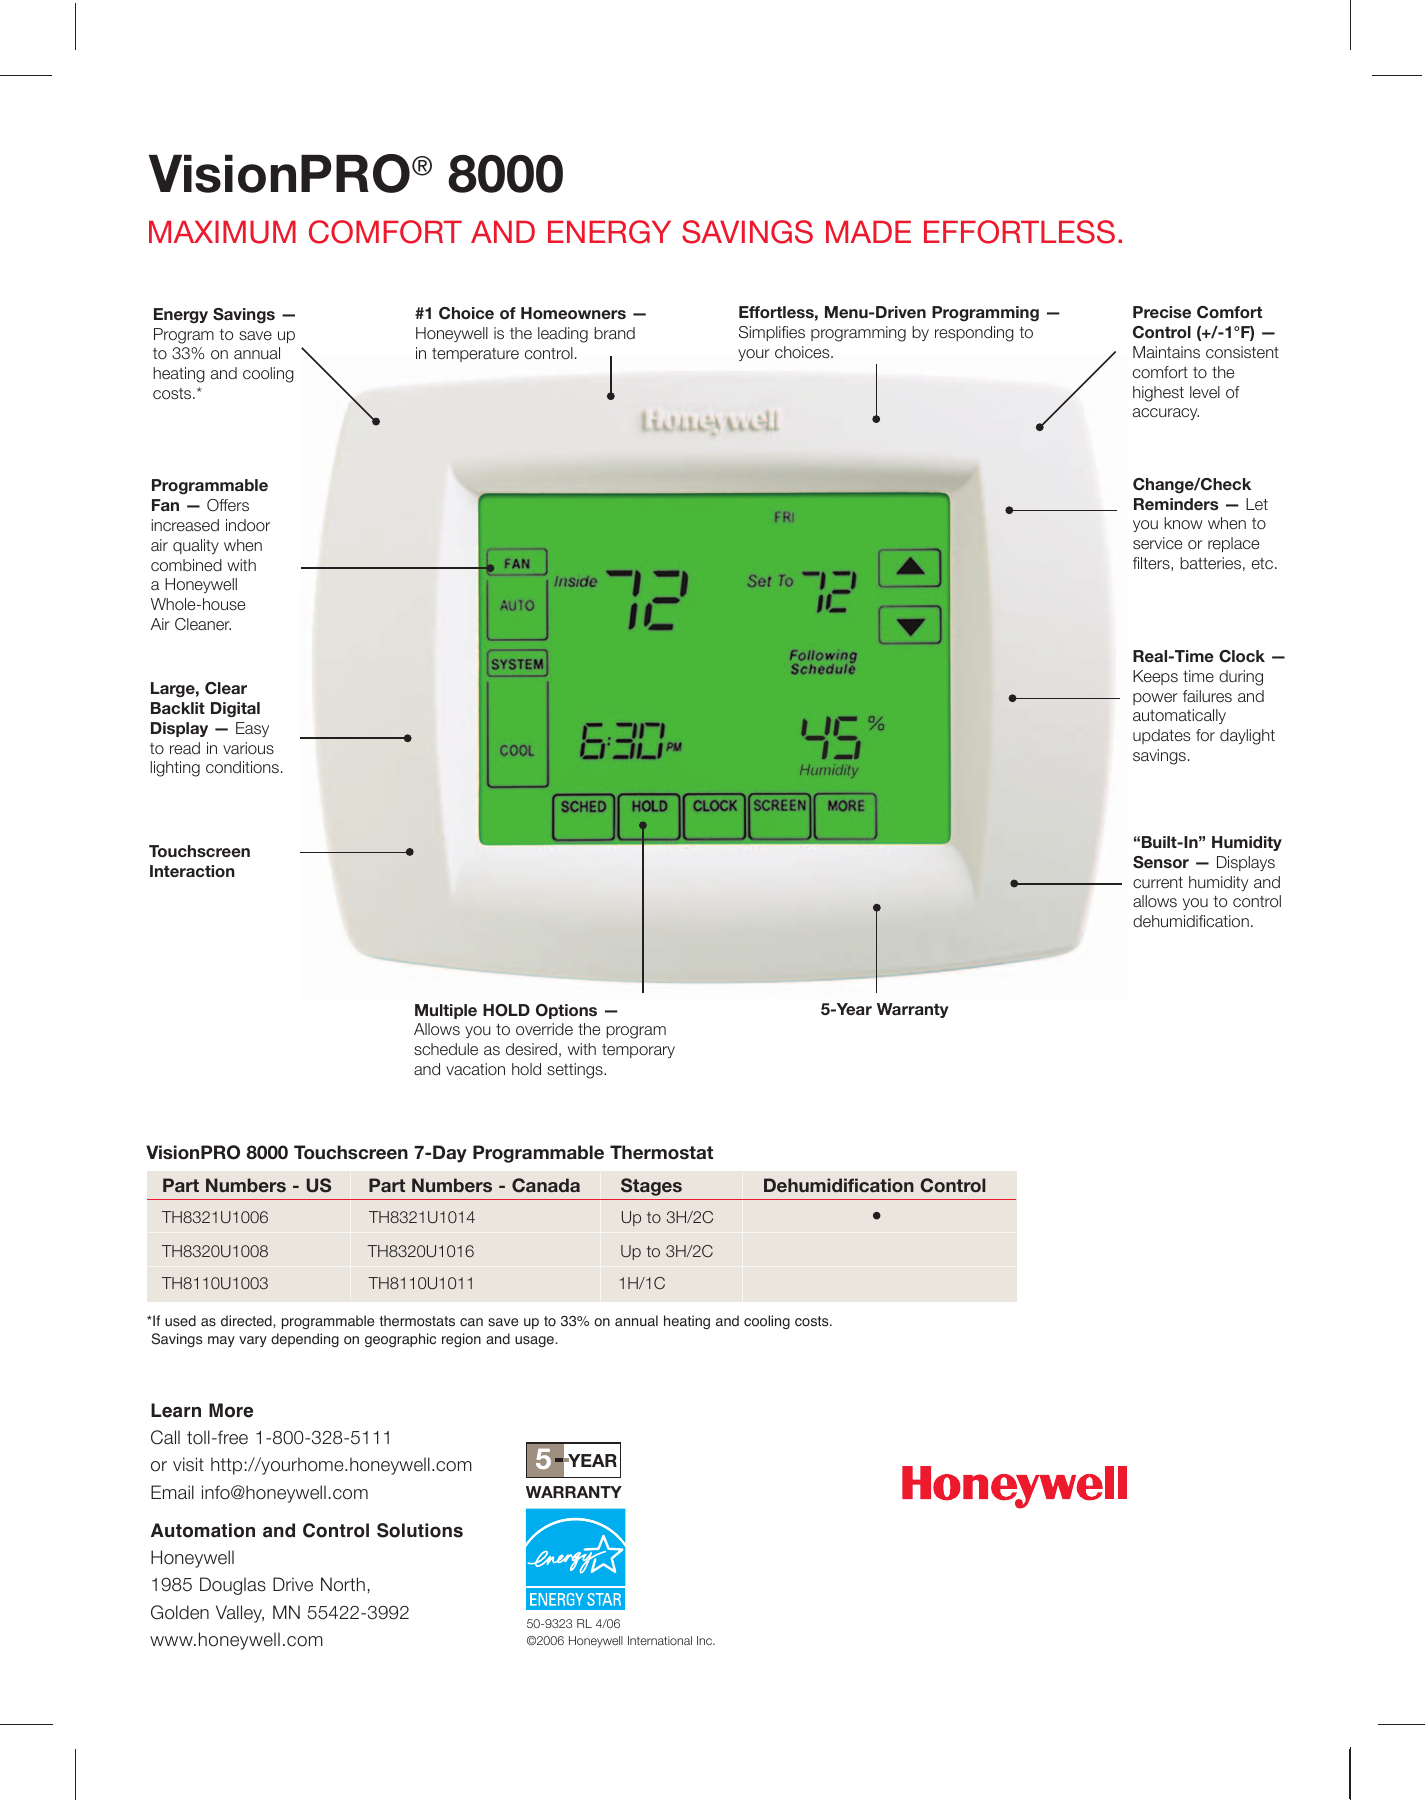 Honeywell Visionpro Iaq Thermostat Wiring Electrical Diagram For Prestige Installation Manual How To Programmable